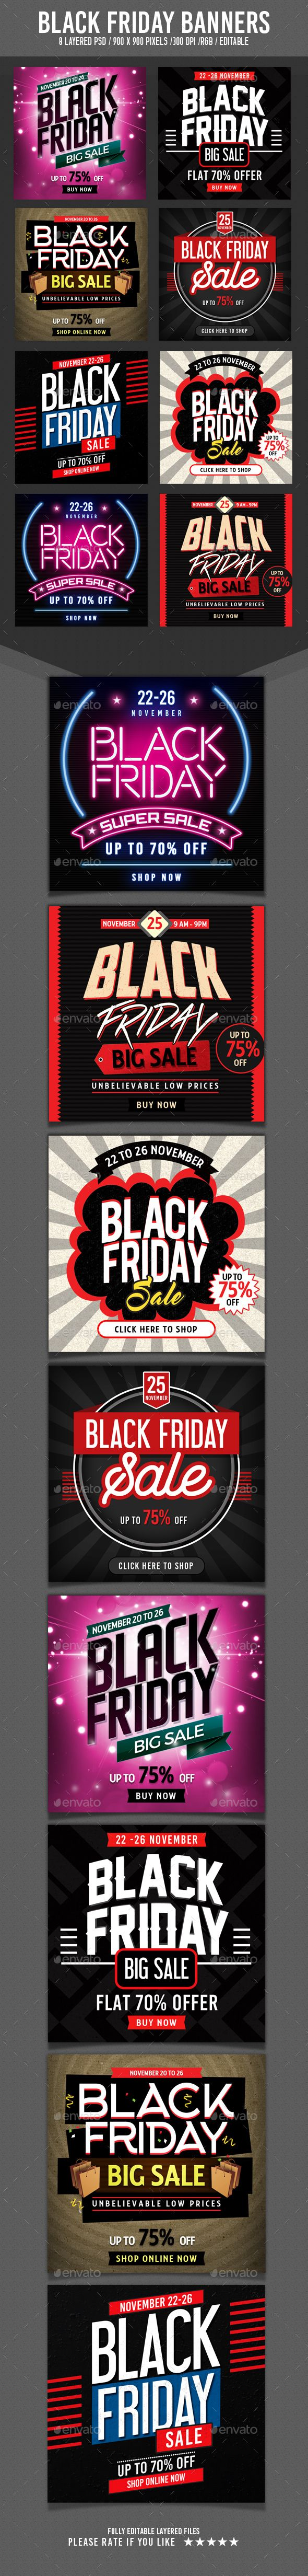 Black Friday Banners Template PSD